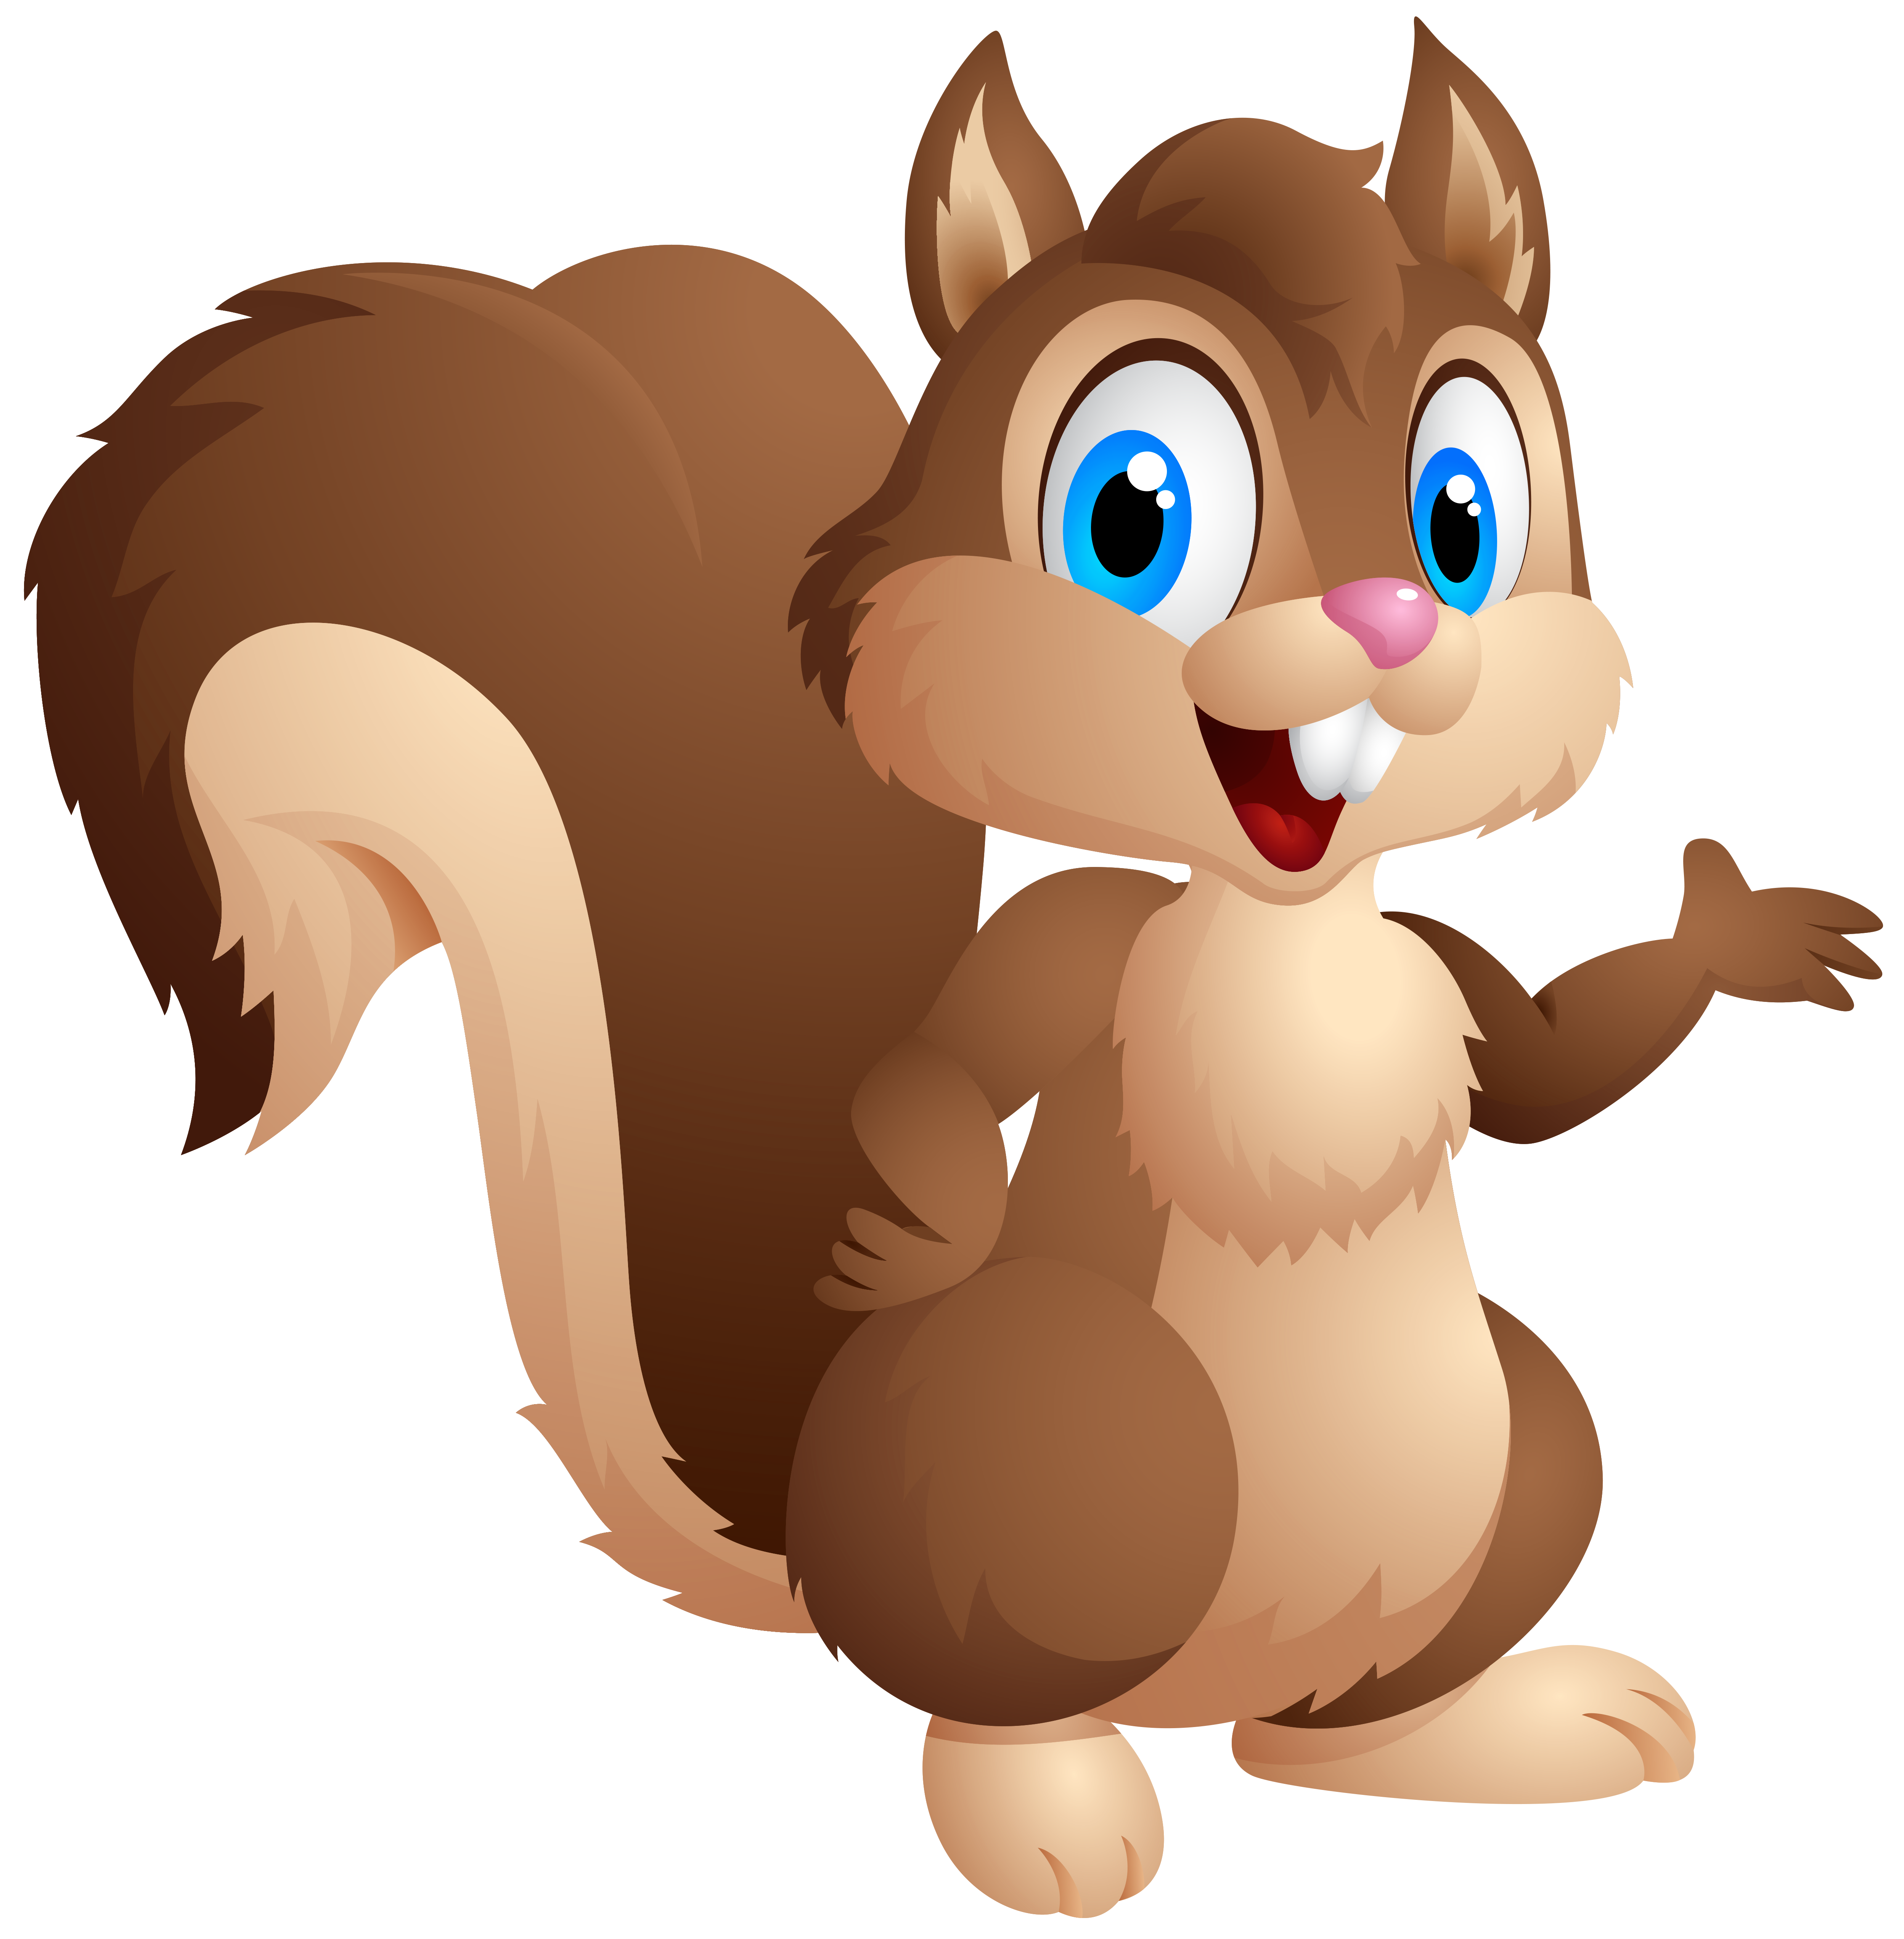 Cute squirrel png image. Flying clipart cartoon